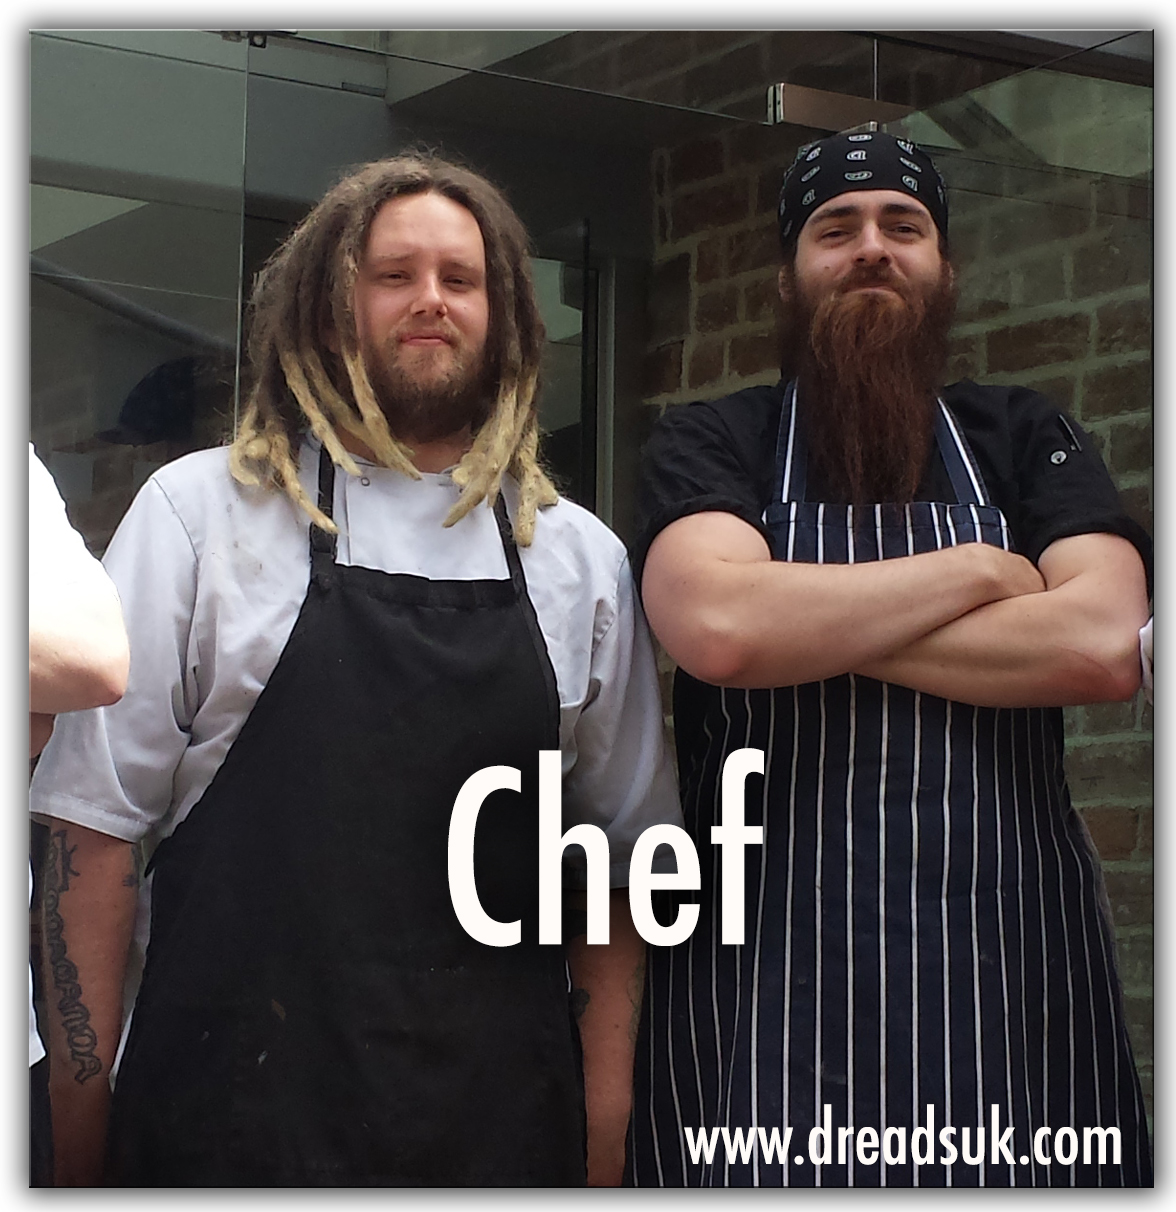 chef jobs with dreadlocks